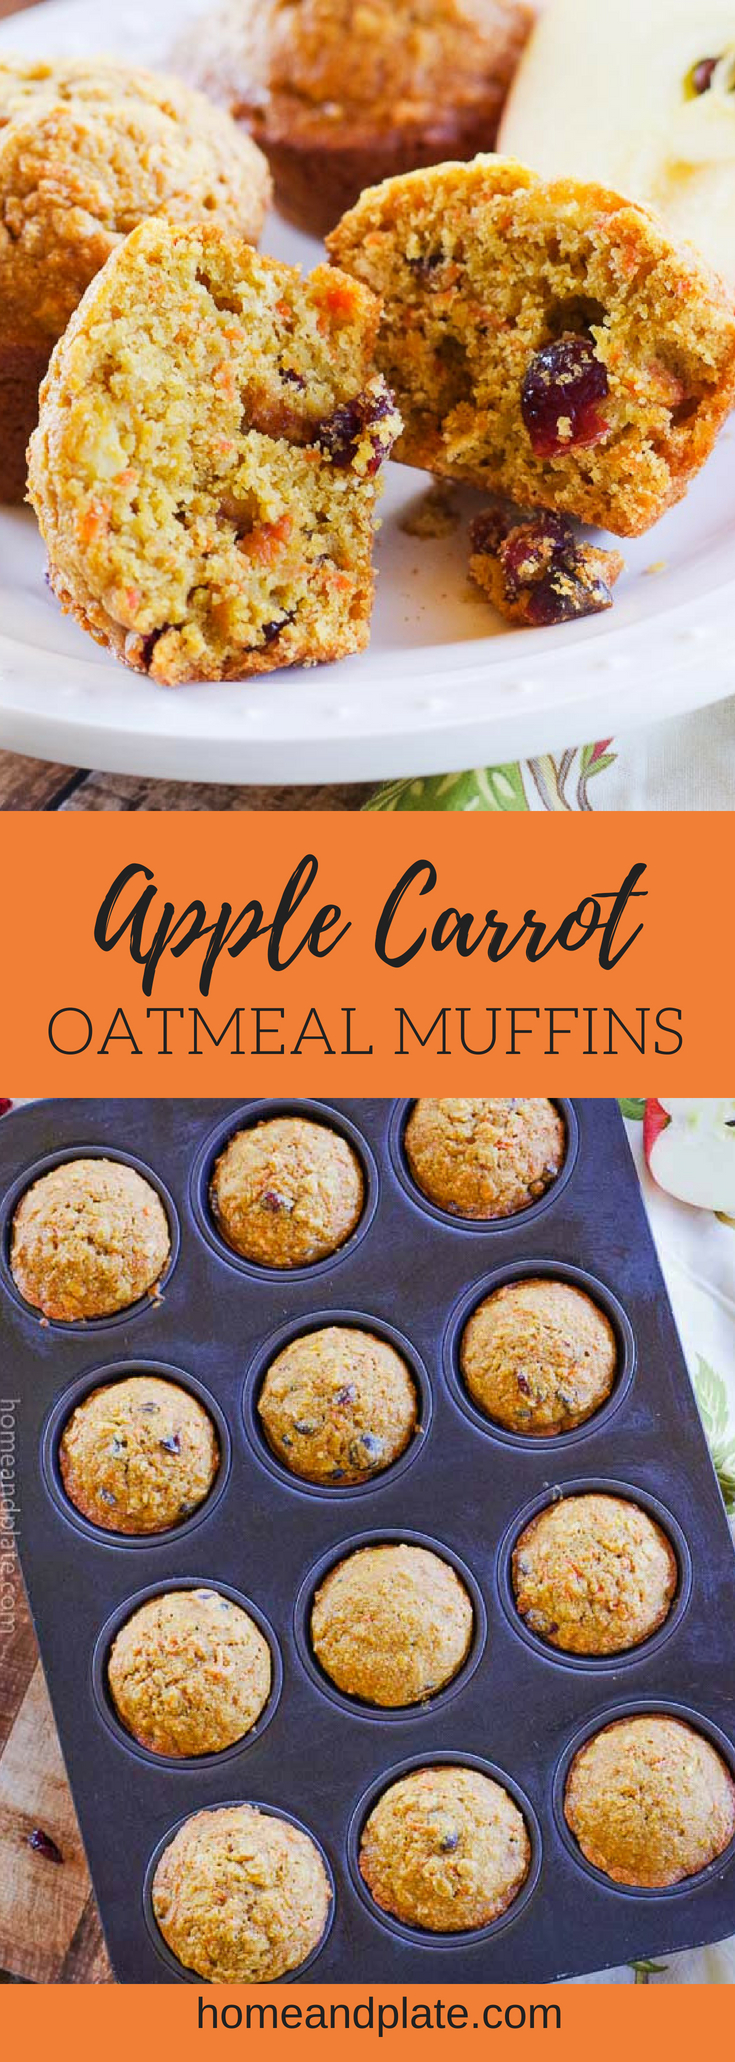 Apple Carrot Oatmeal Muffins   Soft and full of flavor, these apple carrot oatmeal muffins {a.k.a. morning glory muffins} feature whole wheat goodness to start your day. #muffins #morningglorymuffins #applecarrotoatmealmuffins #healthymuffins #homeandplate